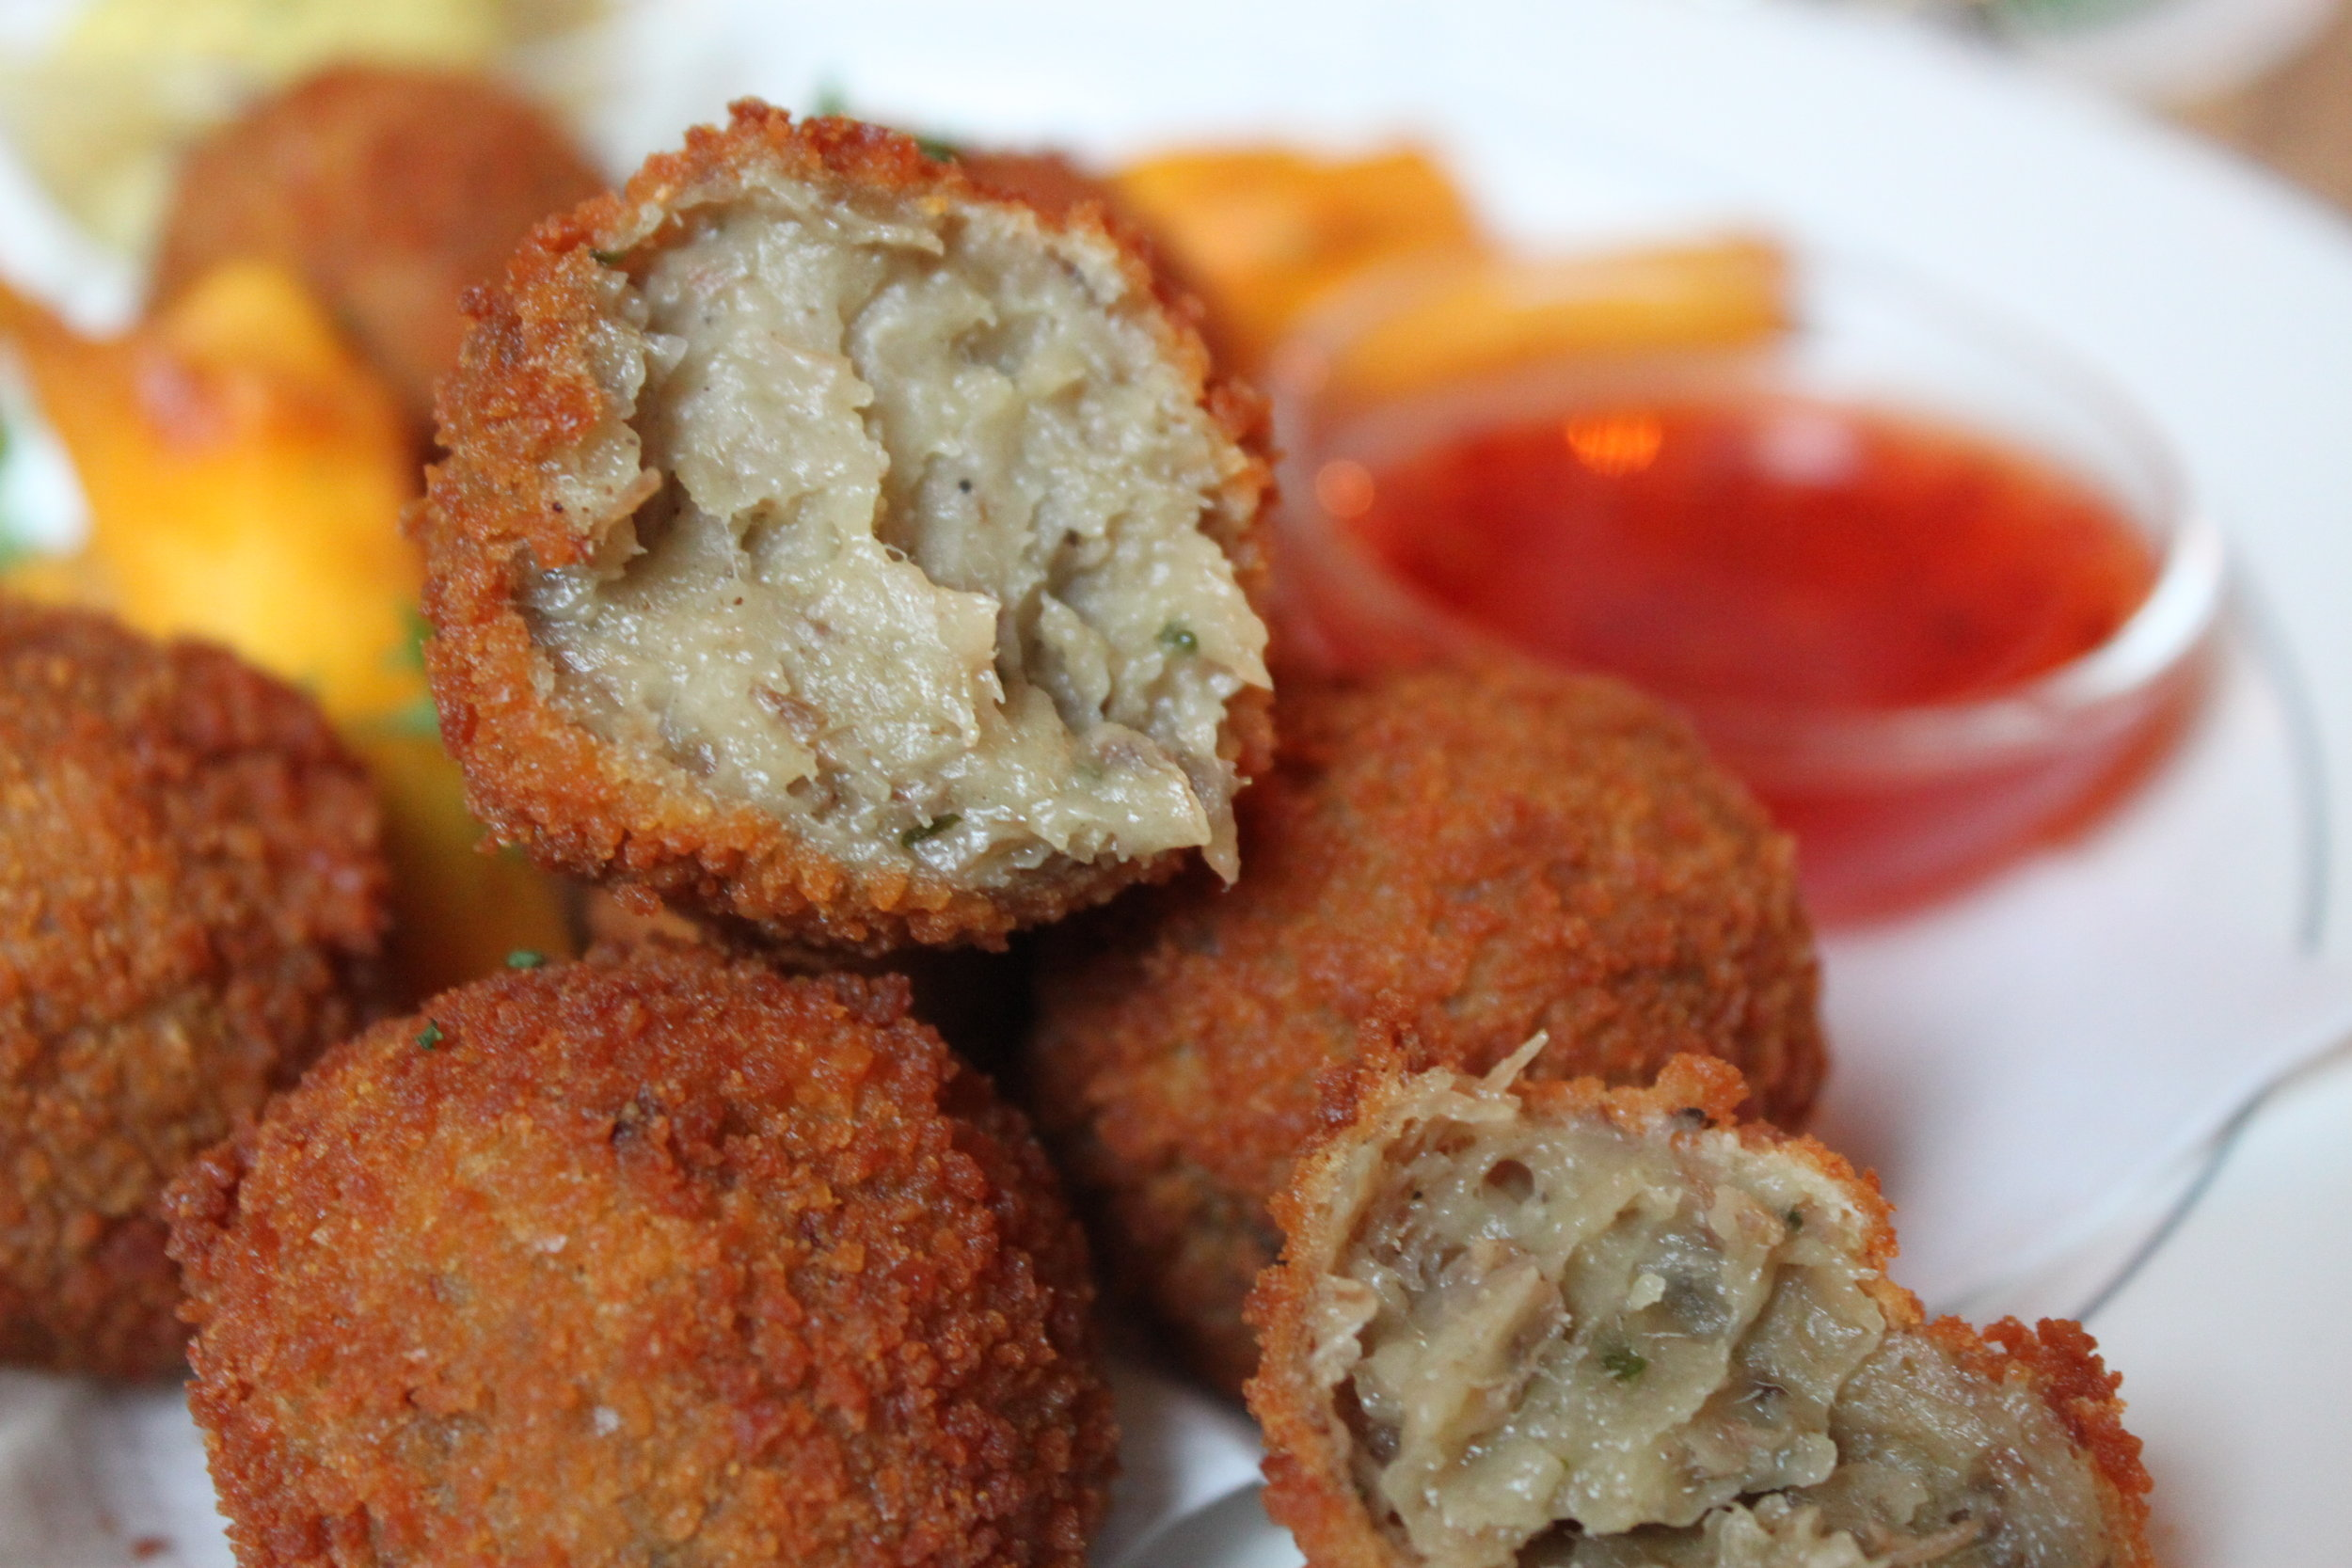 This is a bitterballen. This is the questionable meat I speak of. Yuck. I need to hurry up and write this so I can stop looking at it.